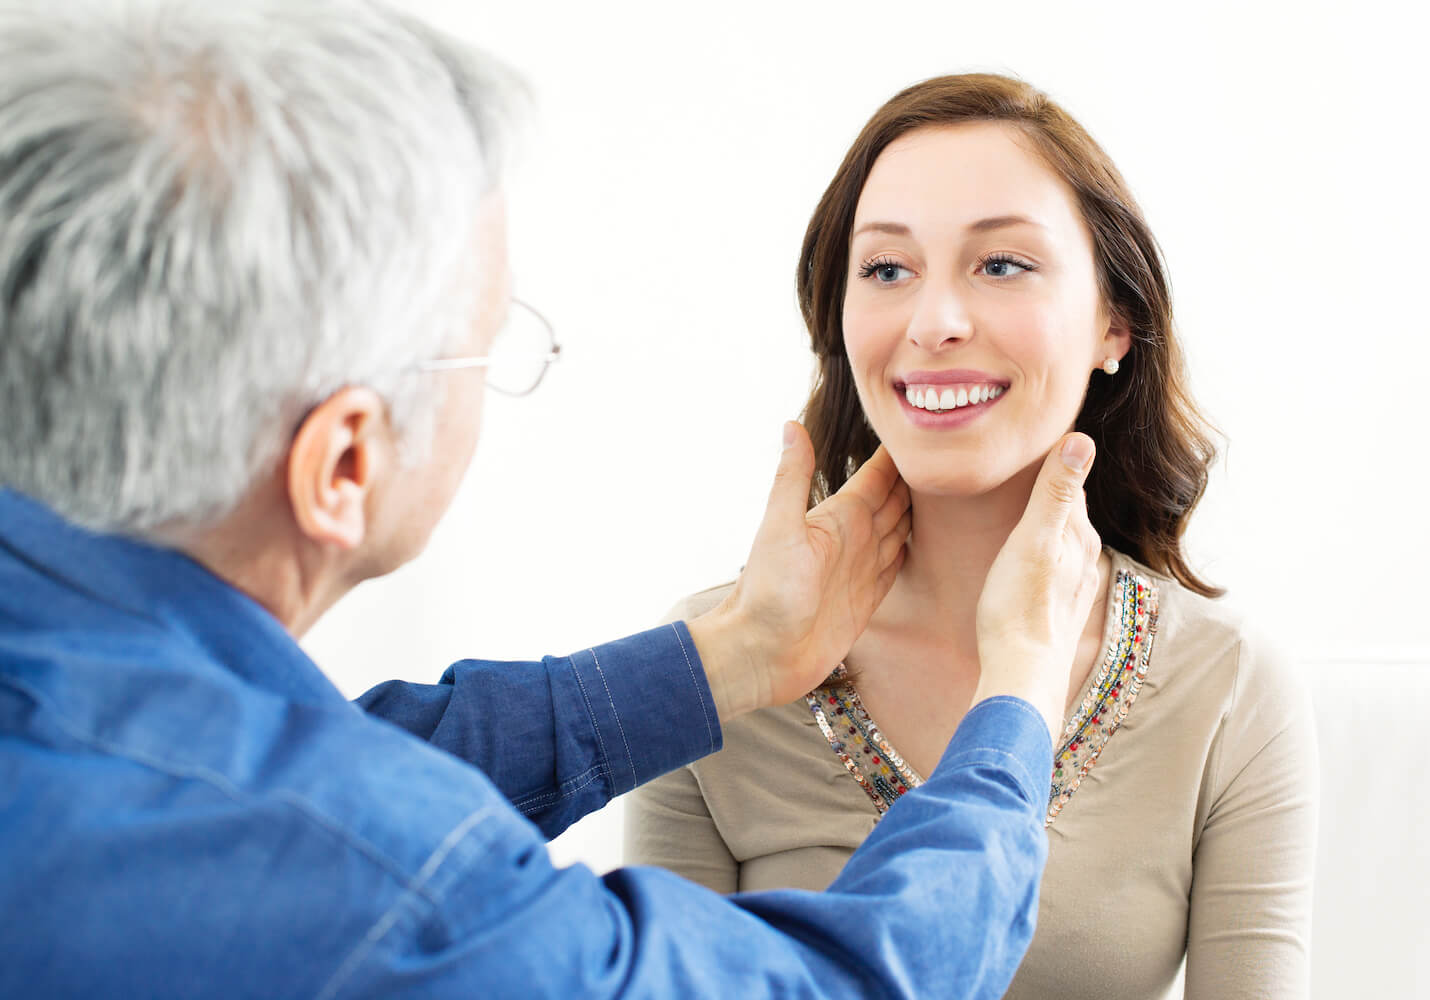 Doctor examining patient's thyroid